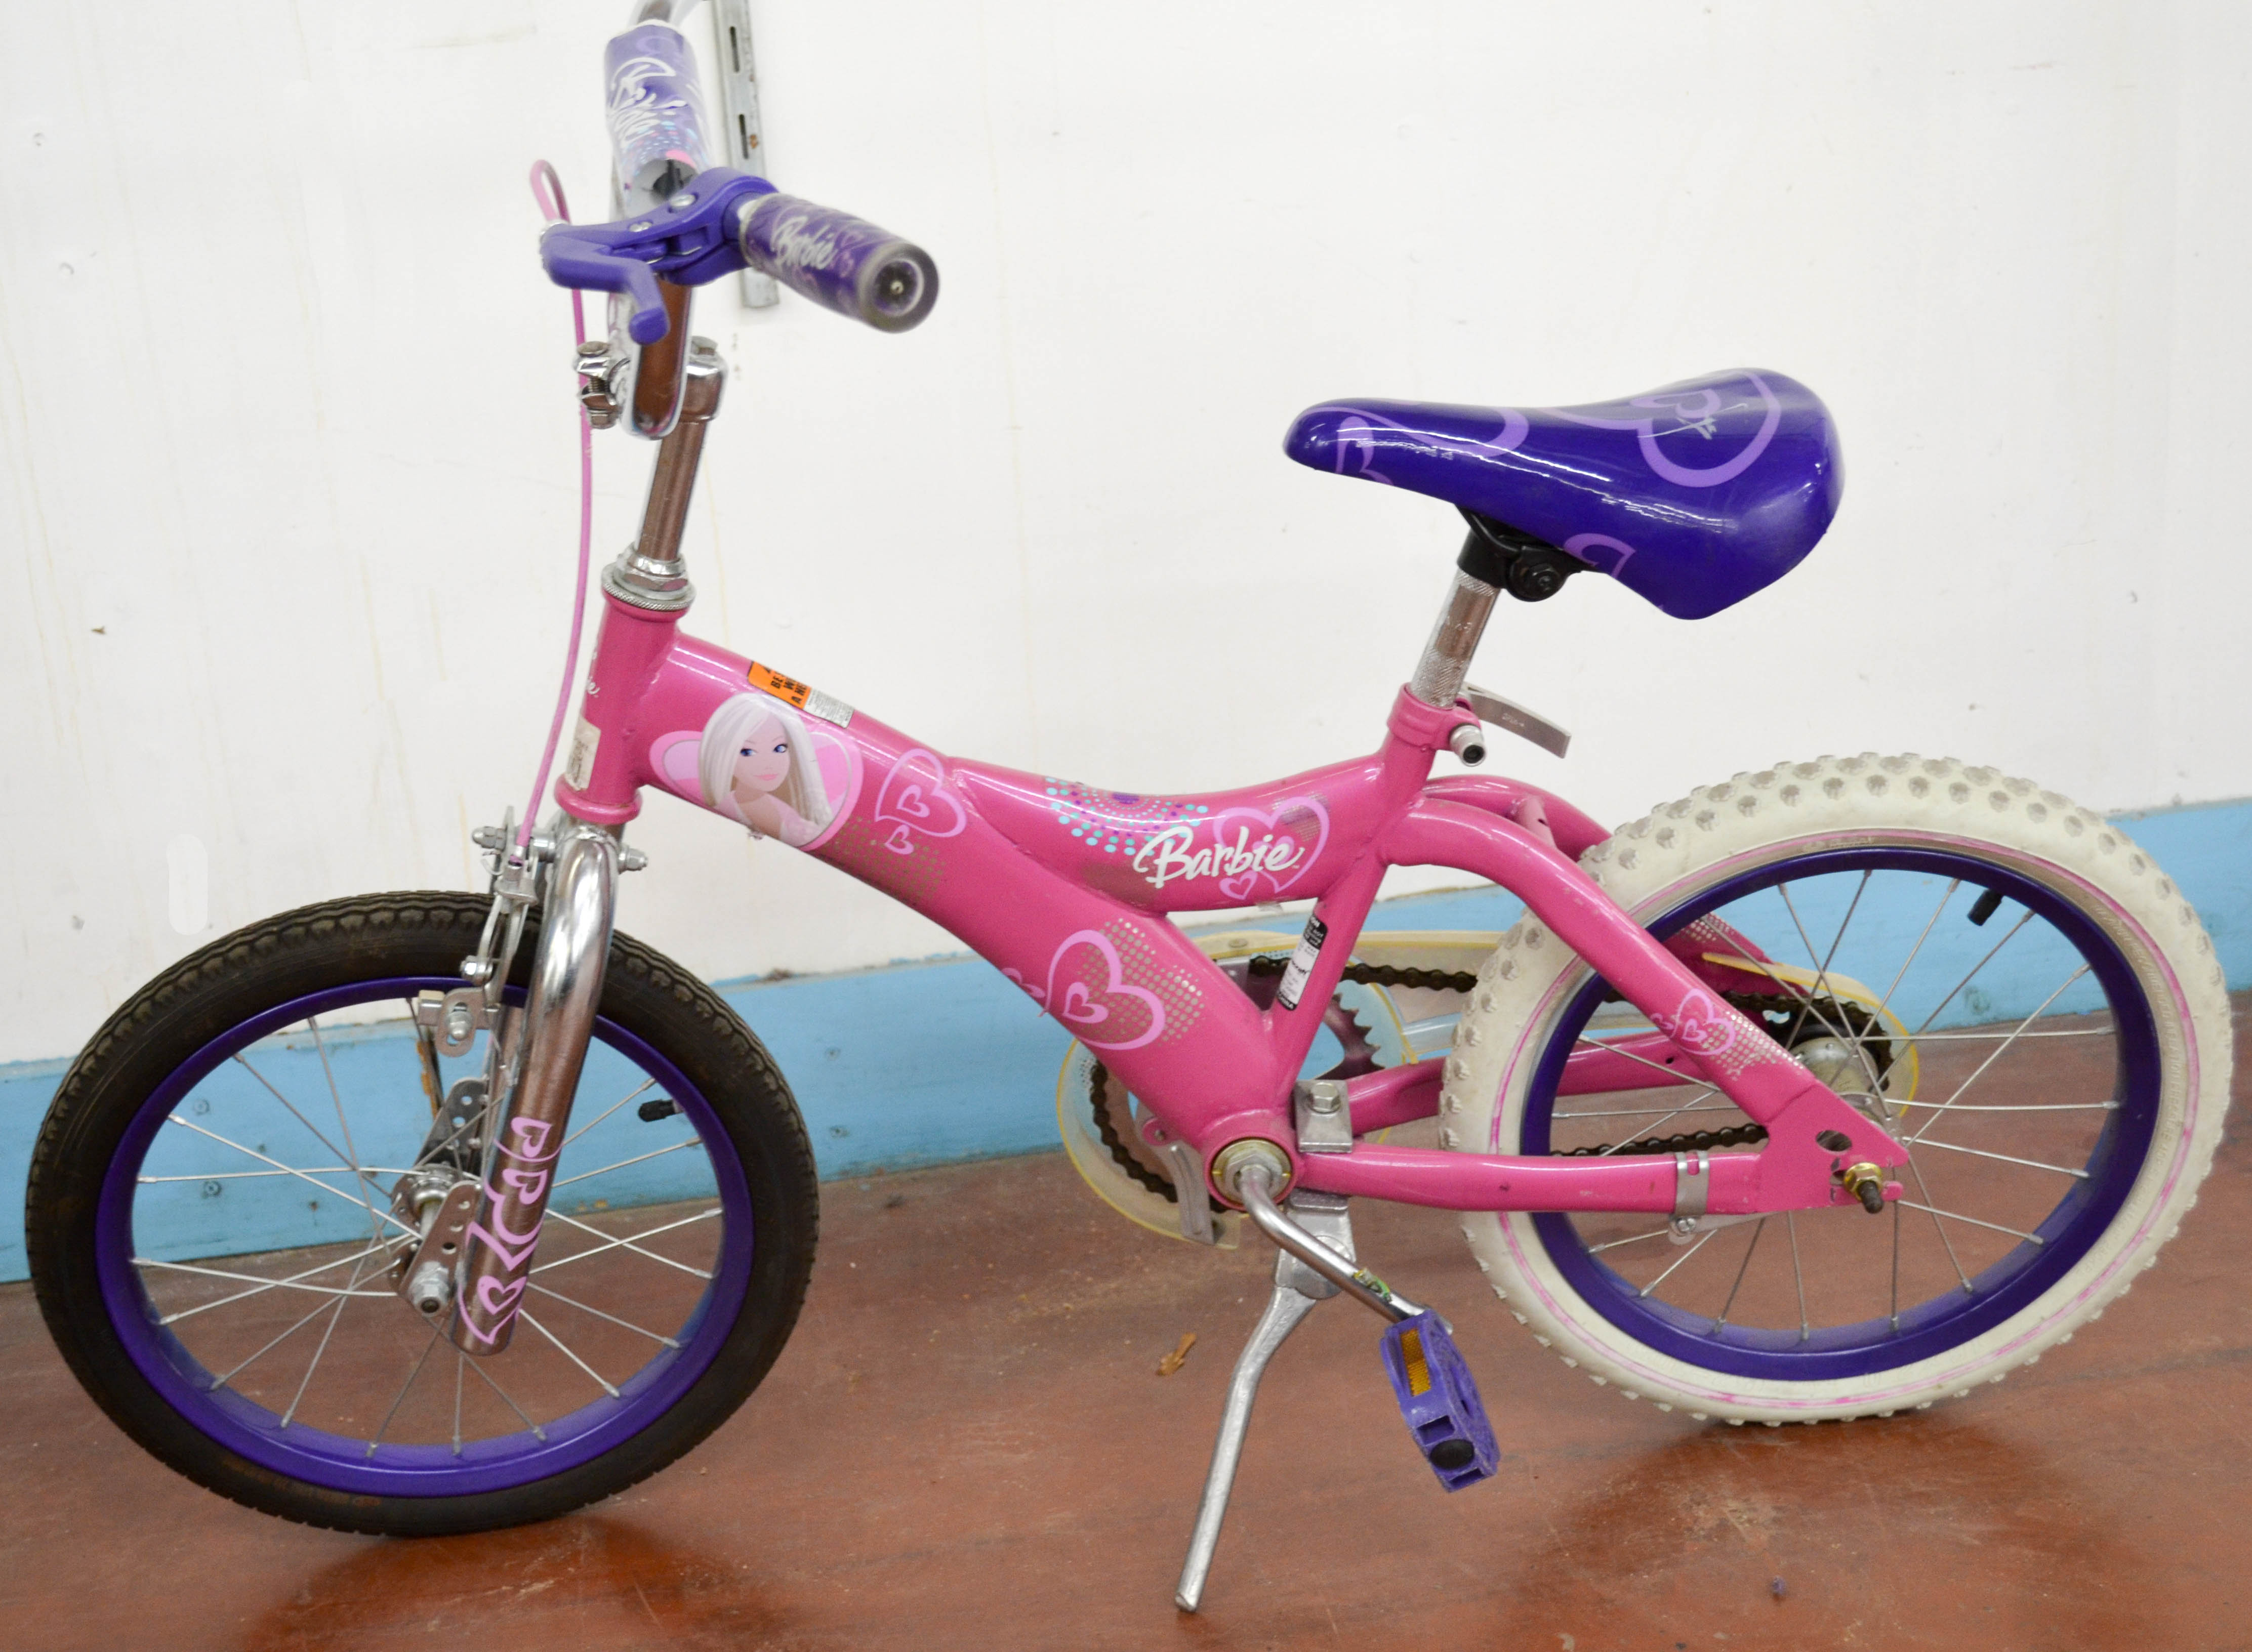 111 Barbie Bike